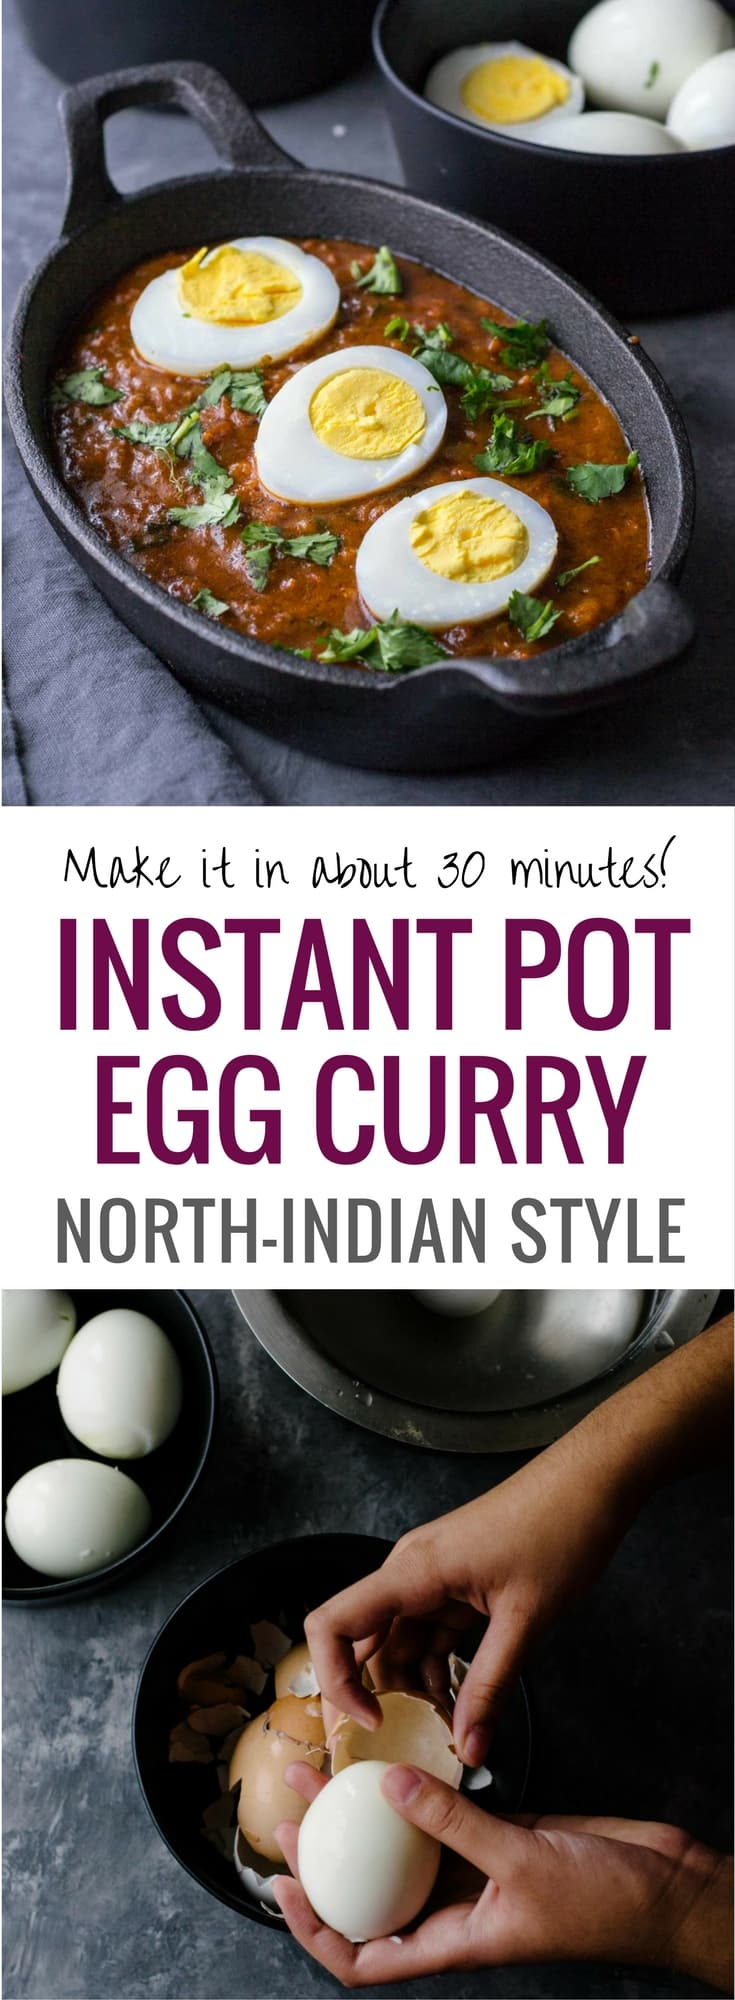 Easy Indian egg curry recipe - There are so many things that you can do with hard boiled eggs, but lately, we've been into this delicious North-Indian Punjabi style egg curry that you can quickly make in an Instant Pot or stove top. Pair it with rice or rotis to make a complete meal.  Enrich it with coconut milk to make a creamy version.  #Indiancuisine #healthyindianrecipes #ethniccuisine #worldcuisine #indianfood #InstantPotRecipe